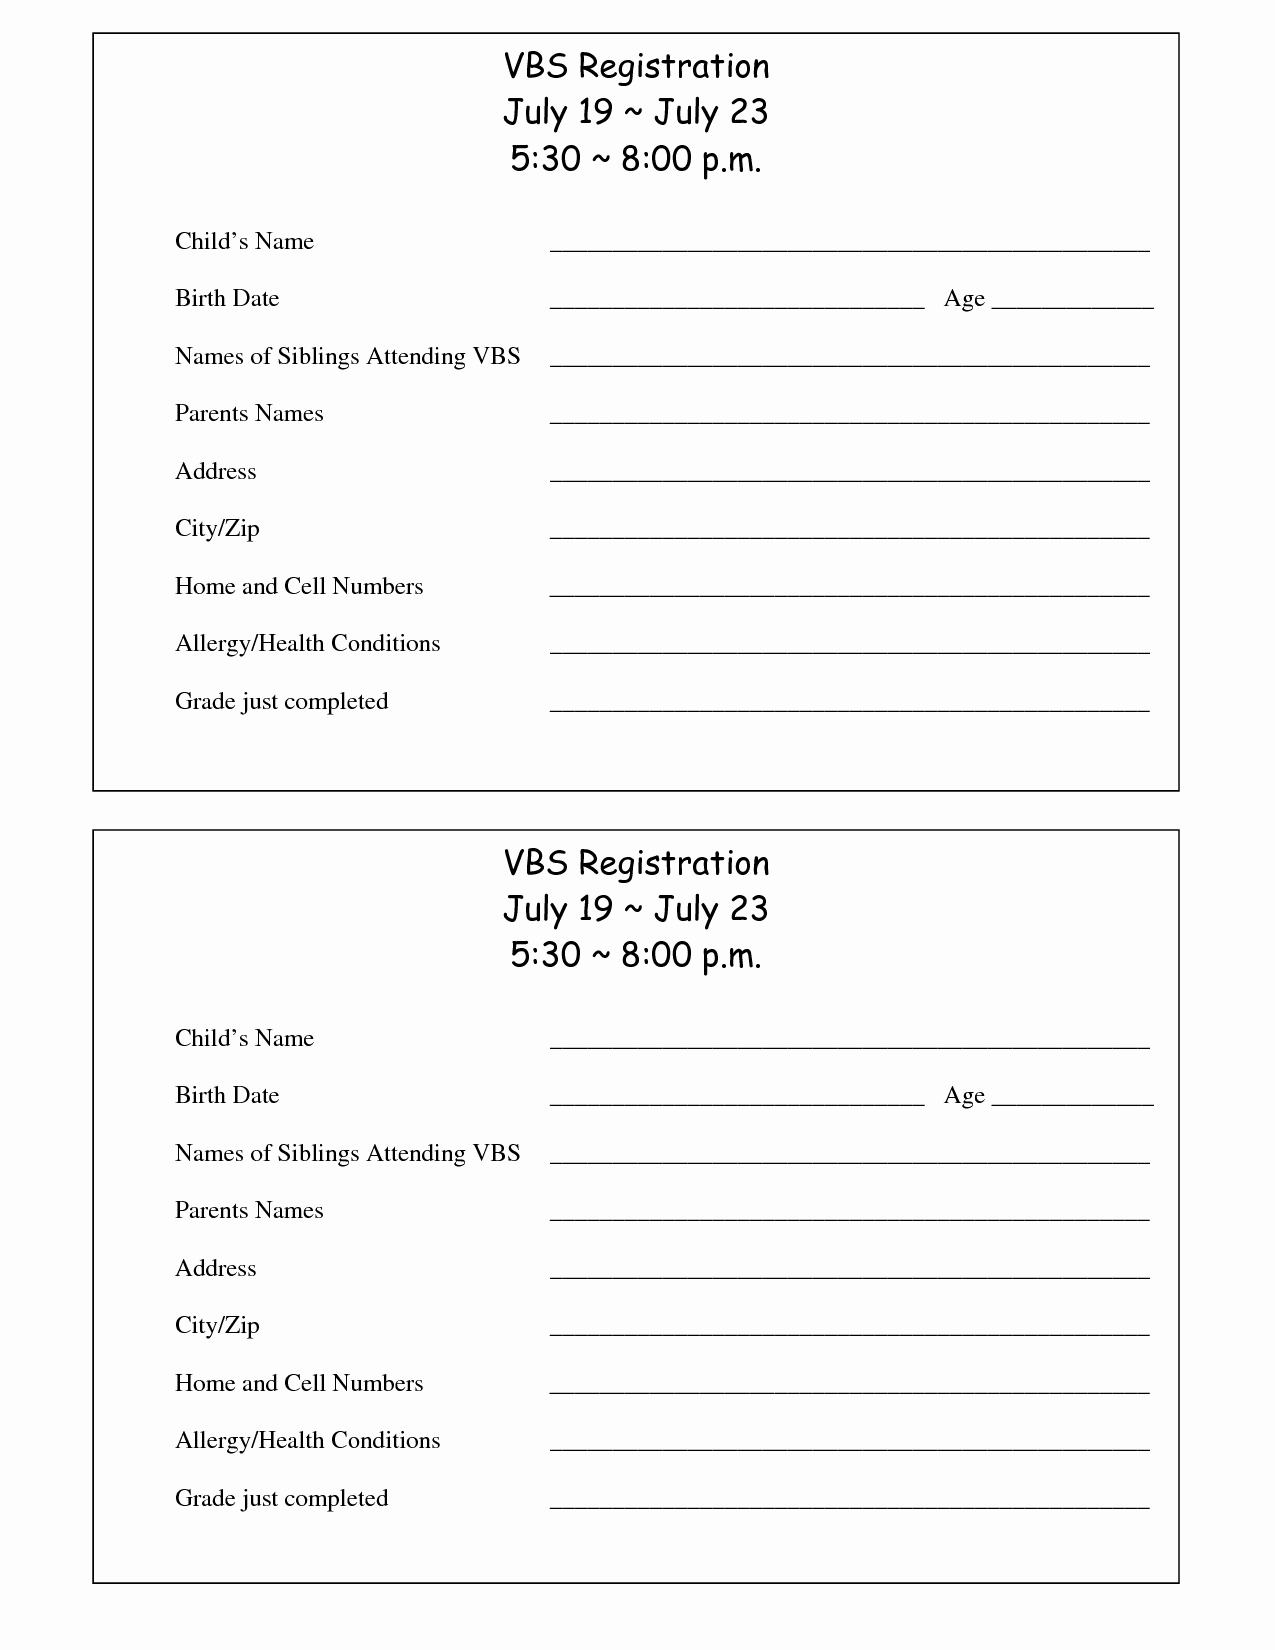 Conference Registration form Template Word New event Registration form Template Word Bamboodownunder